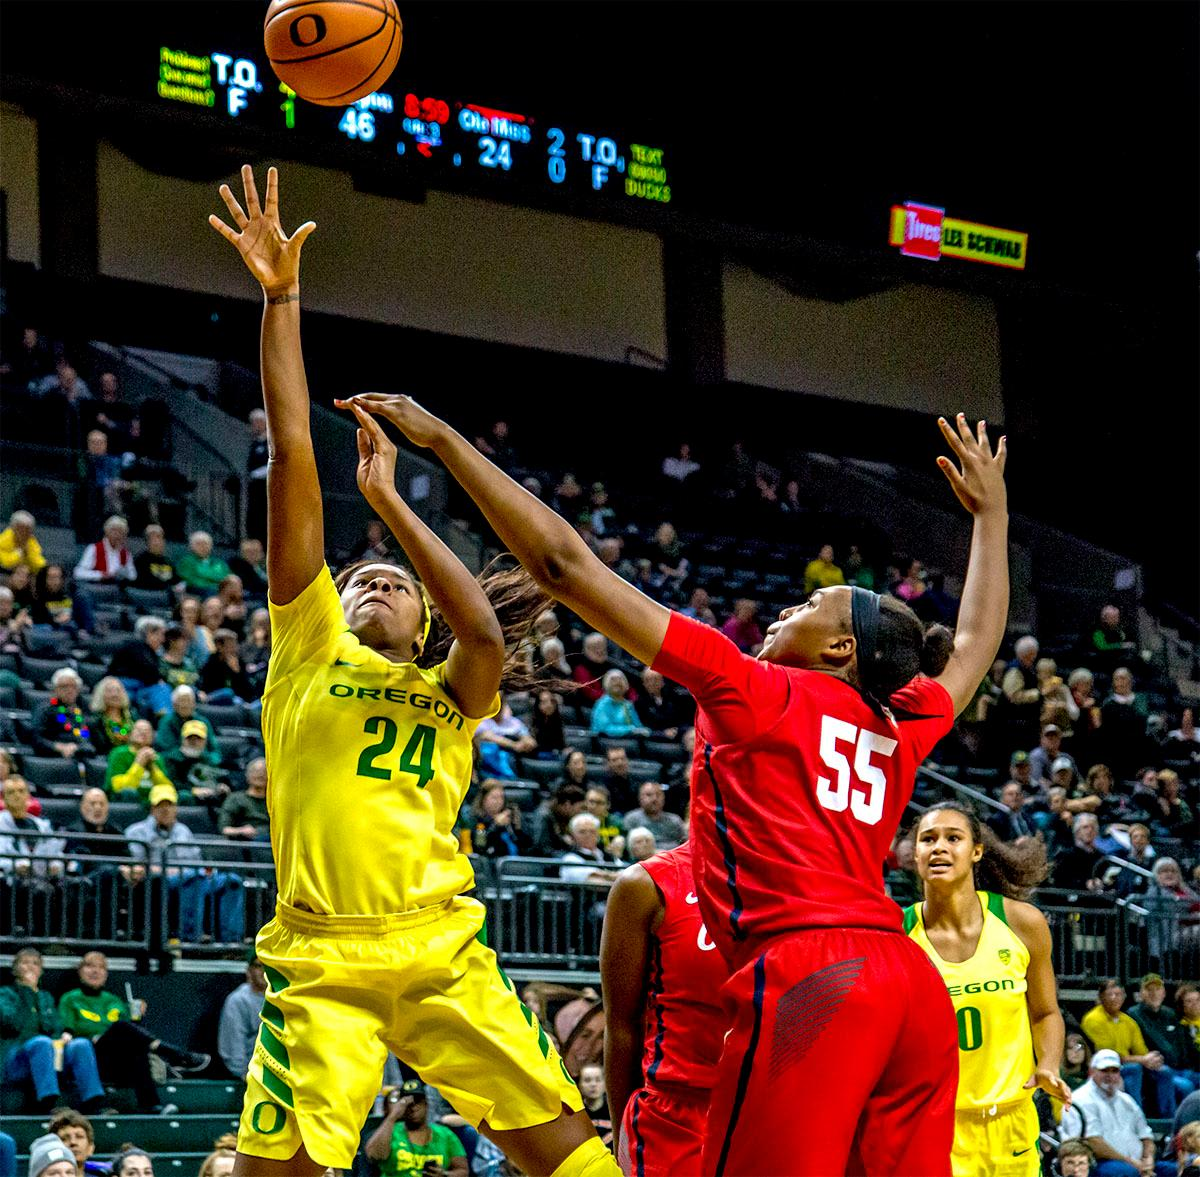 The Duck's Ruthy Hebard (#24) makes a jump shot against the Rebels. The Duck's Sabrina Ionescu (#20) is introduced at the start of the game against the Ole Miss Rebels. The Oregon Ducks womens basketball team defeated the Ole Miss Rebels 90-46 on Sunday at Matthew Knight Arena. Sabrina Ionescu tied the NCAA record for triple-doubles, finishing the game with 21 points, 14 assists, and 11 rebounds. Ruthy Hebard added 16 points, Satou Sabally added 12, and both Lexi Bando and Maite Cazorla scored 10 each. The Ducks will next face off against Texas A&M on Thursday Dec. 21 and Hawaii on Friday Dec. 22 in Las Vegas for Duel in the Desert before the start of Pac-12 games. Photo by August Frank, Oregon News Lab